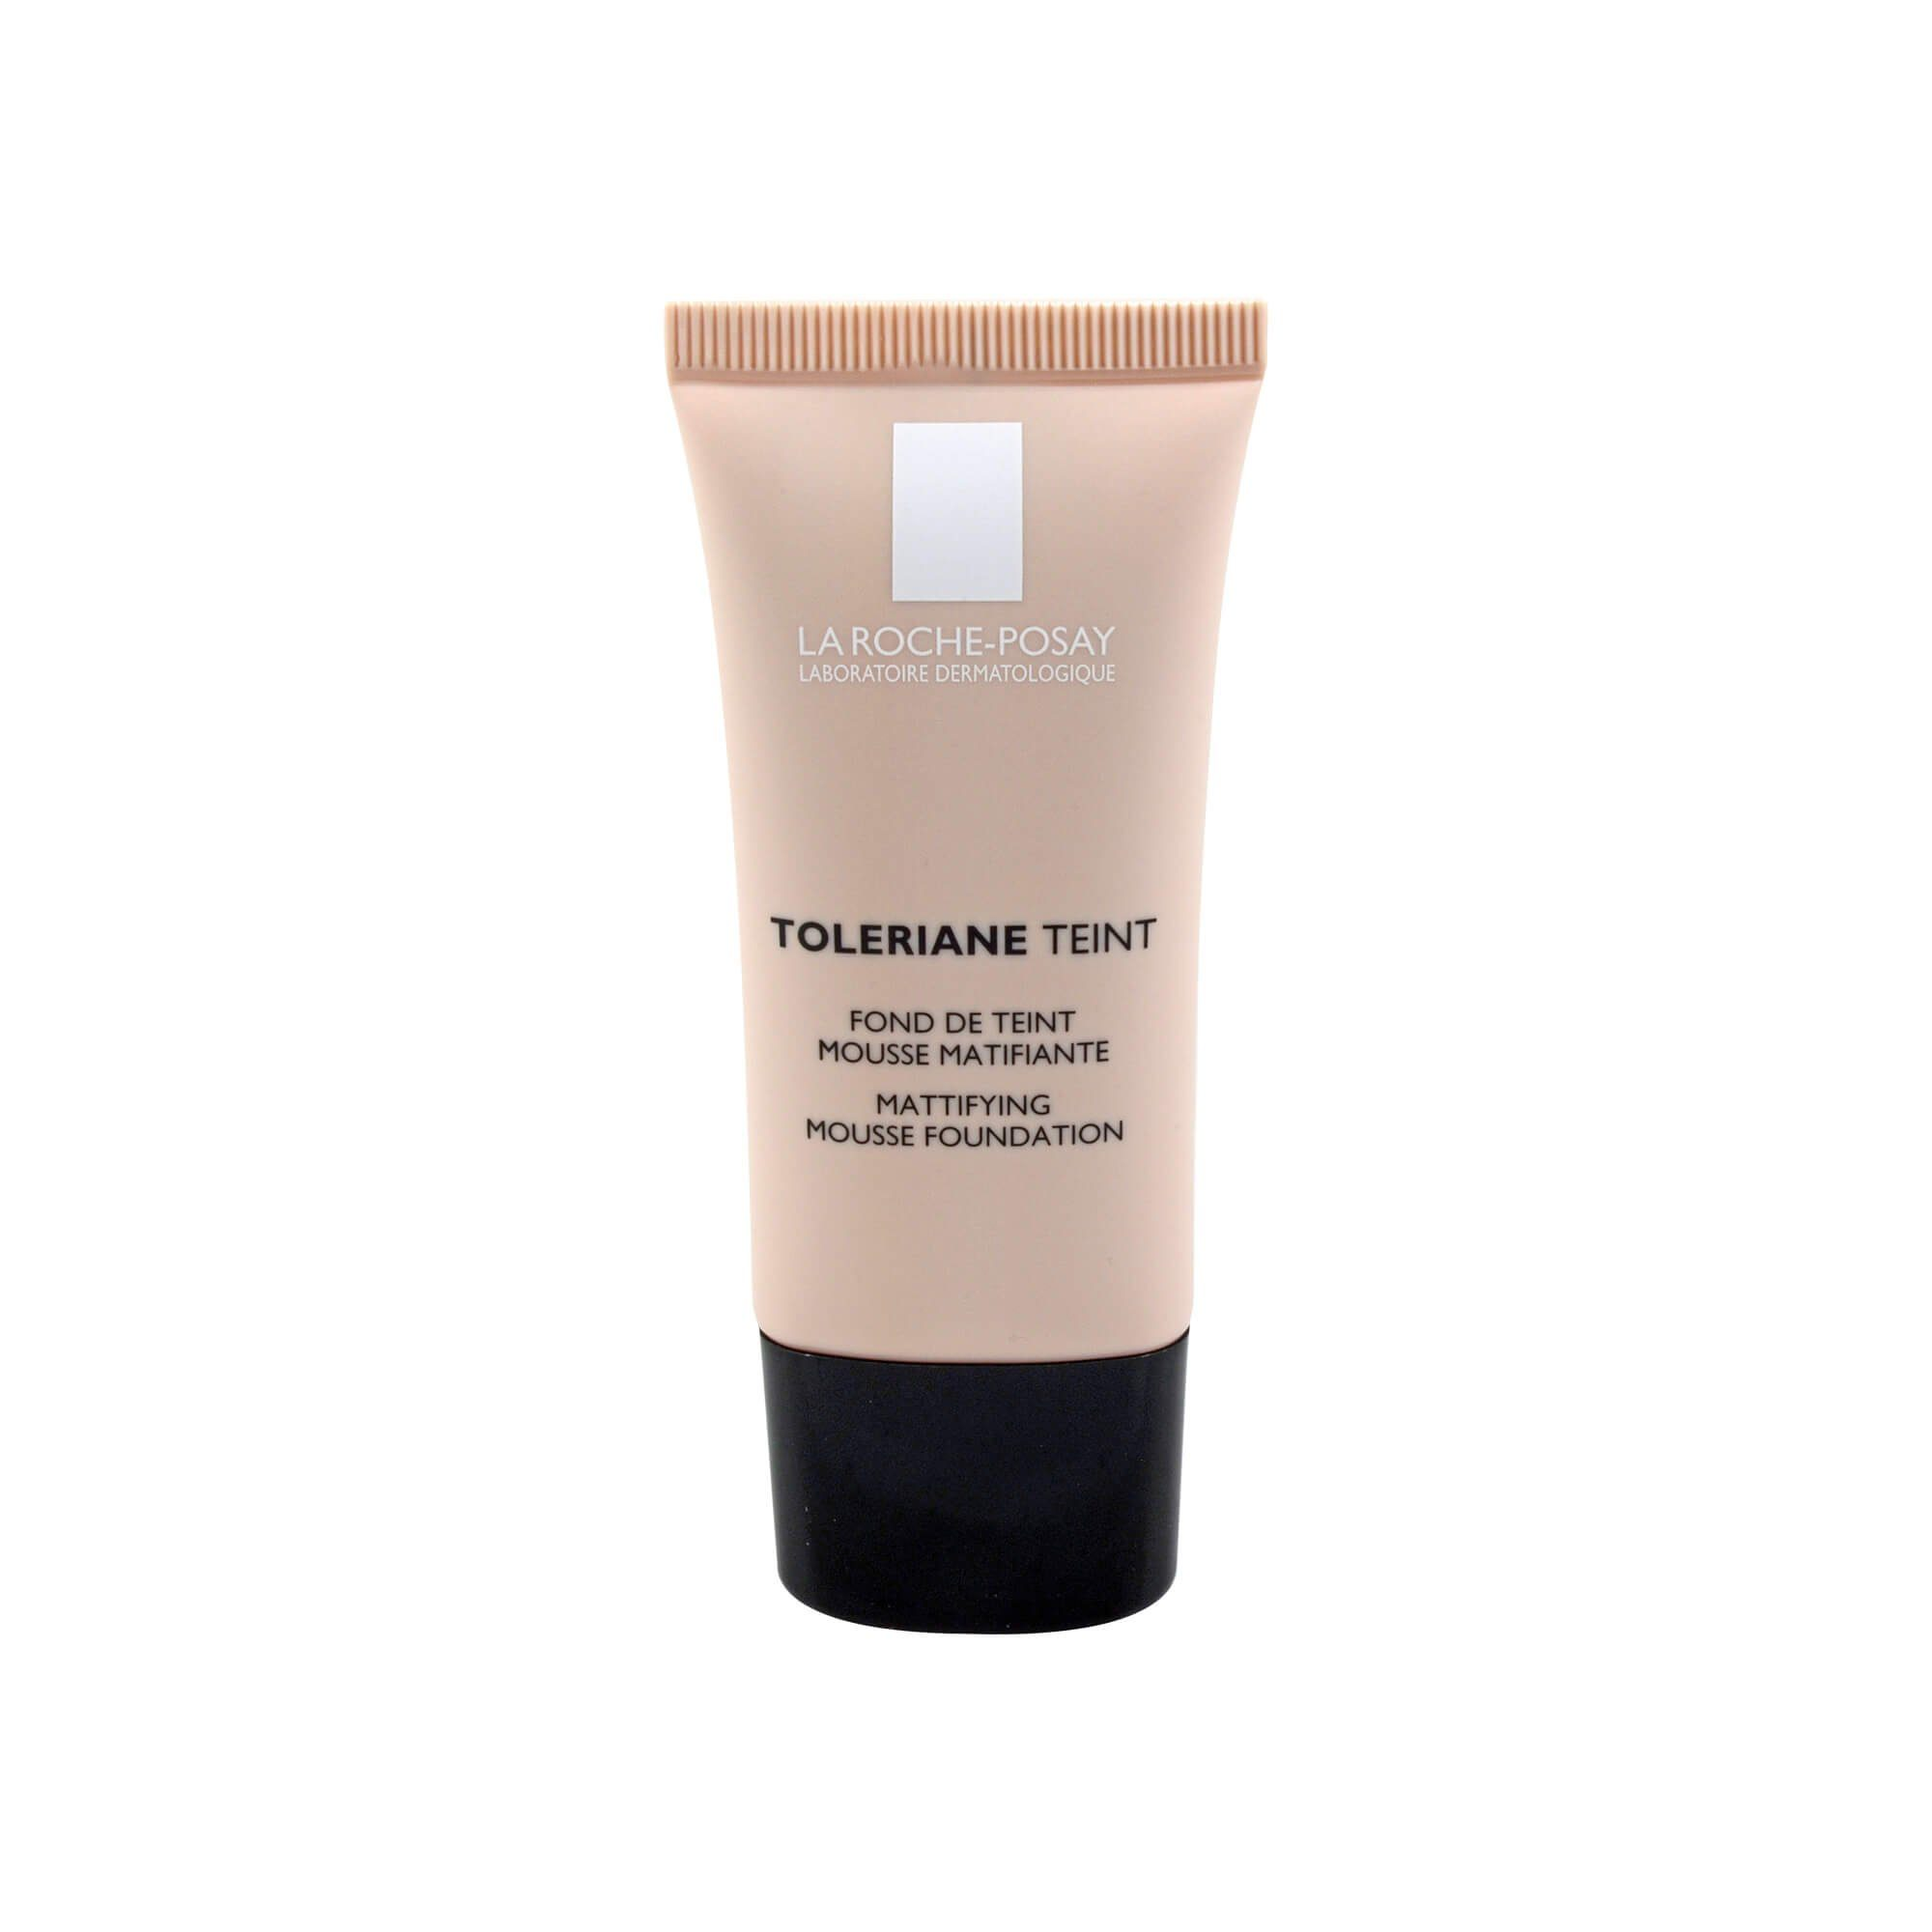 Roche Posay Toleriane Teint Mousse Make-Up 01 , 30 ml